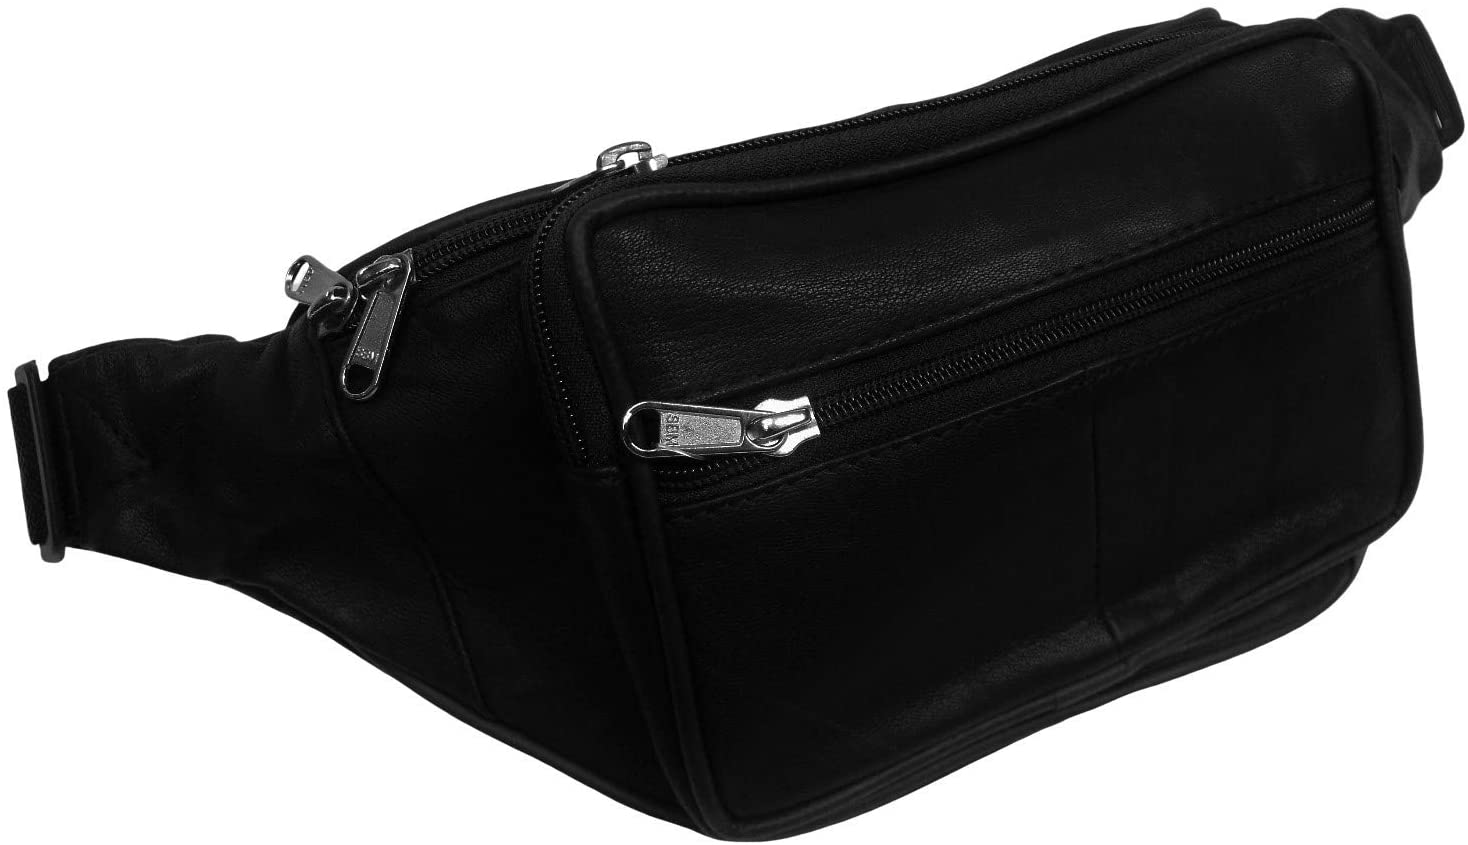 FingerLakes Genuine Leather Lambskin Waist Bag, Fanny Pack - Black (Black)